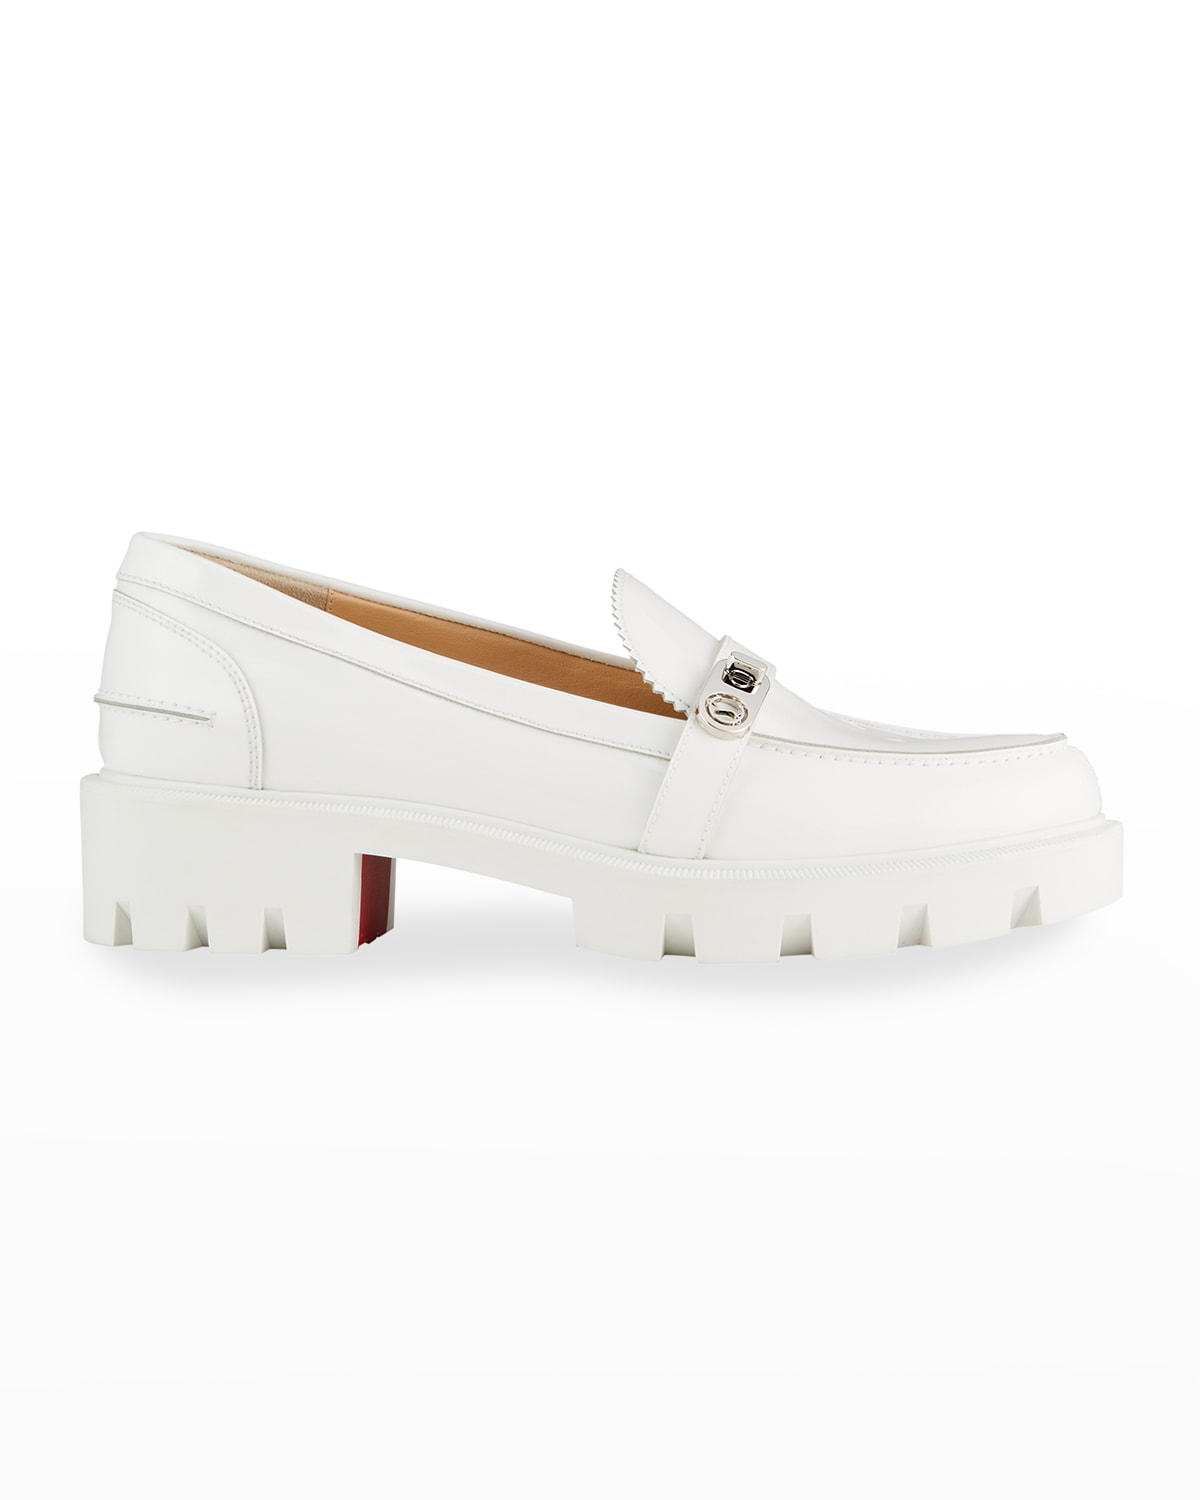 Lock Woody Patent Red Sole Loafers